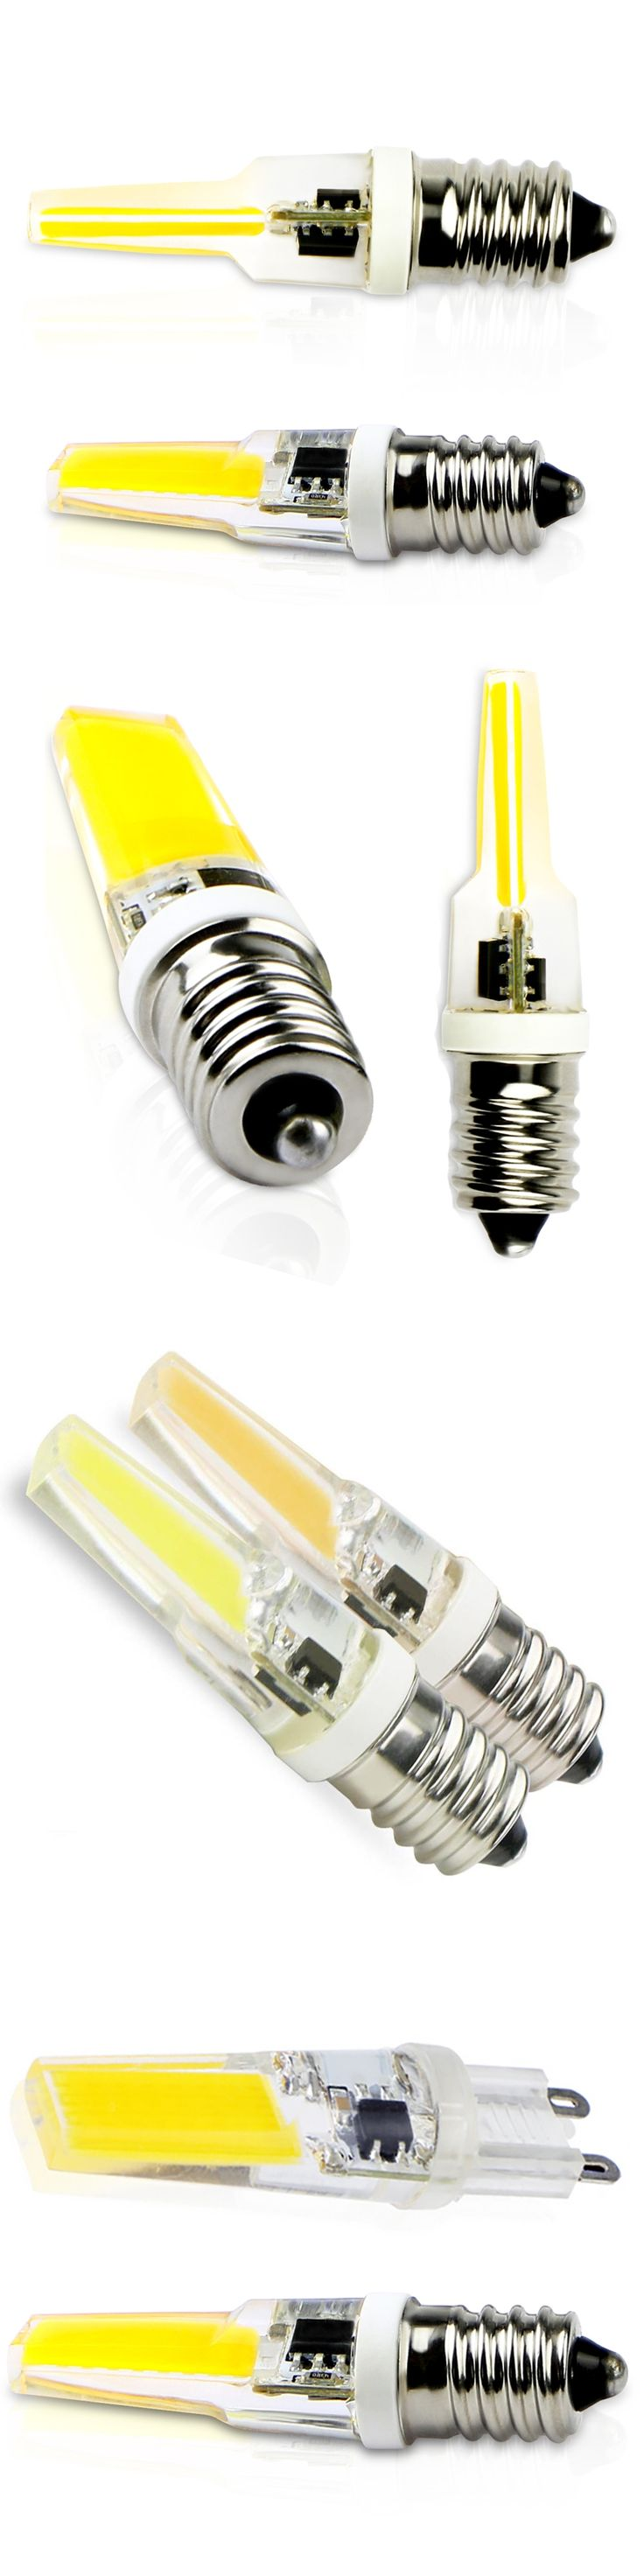 Led G9 Corn Lamps Cob E14 High Quality LED E14 Bulb AC220V 9W COB G9 LED Bulb 360 degrees replace Halogen E14 G9 for Chandelier